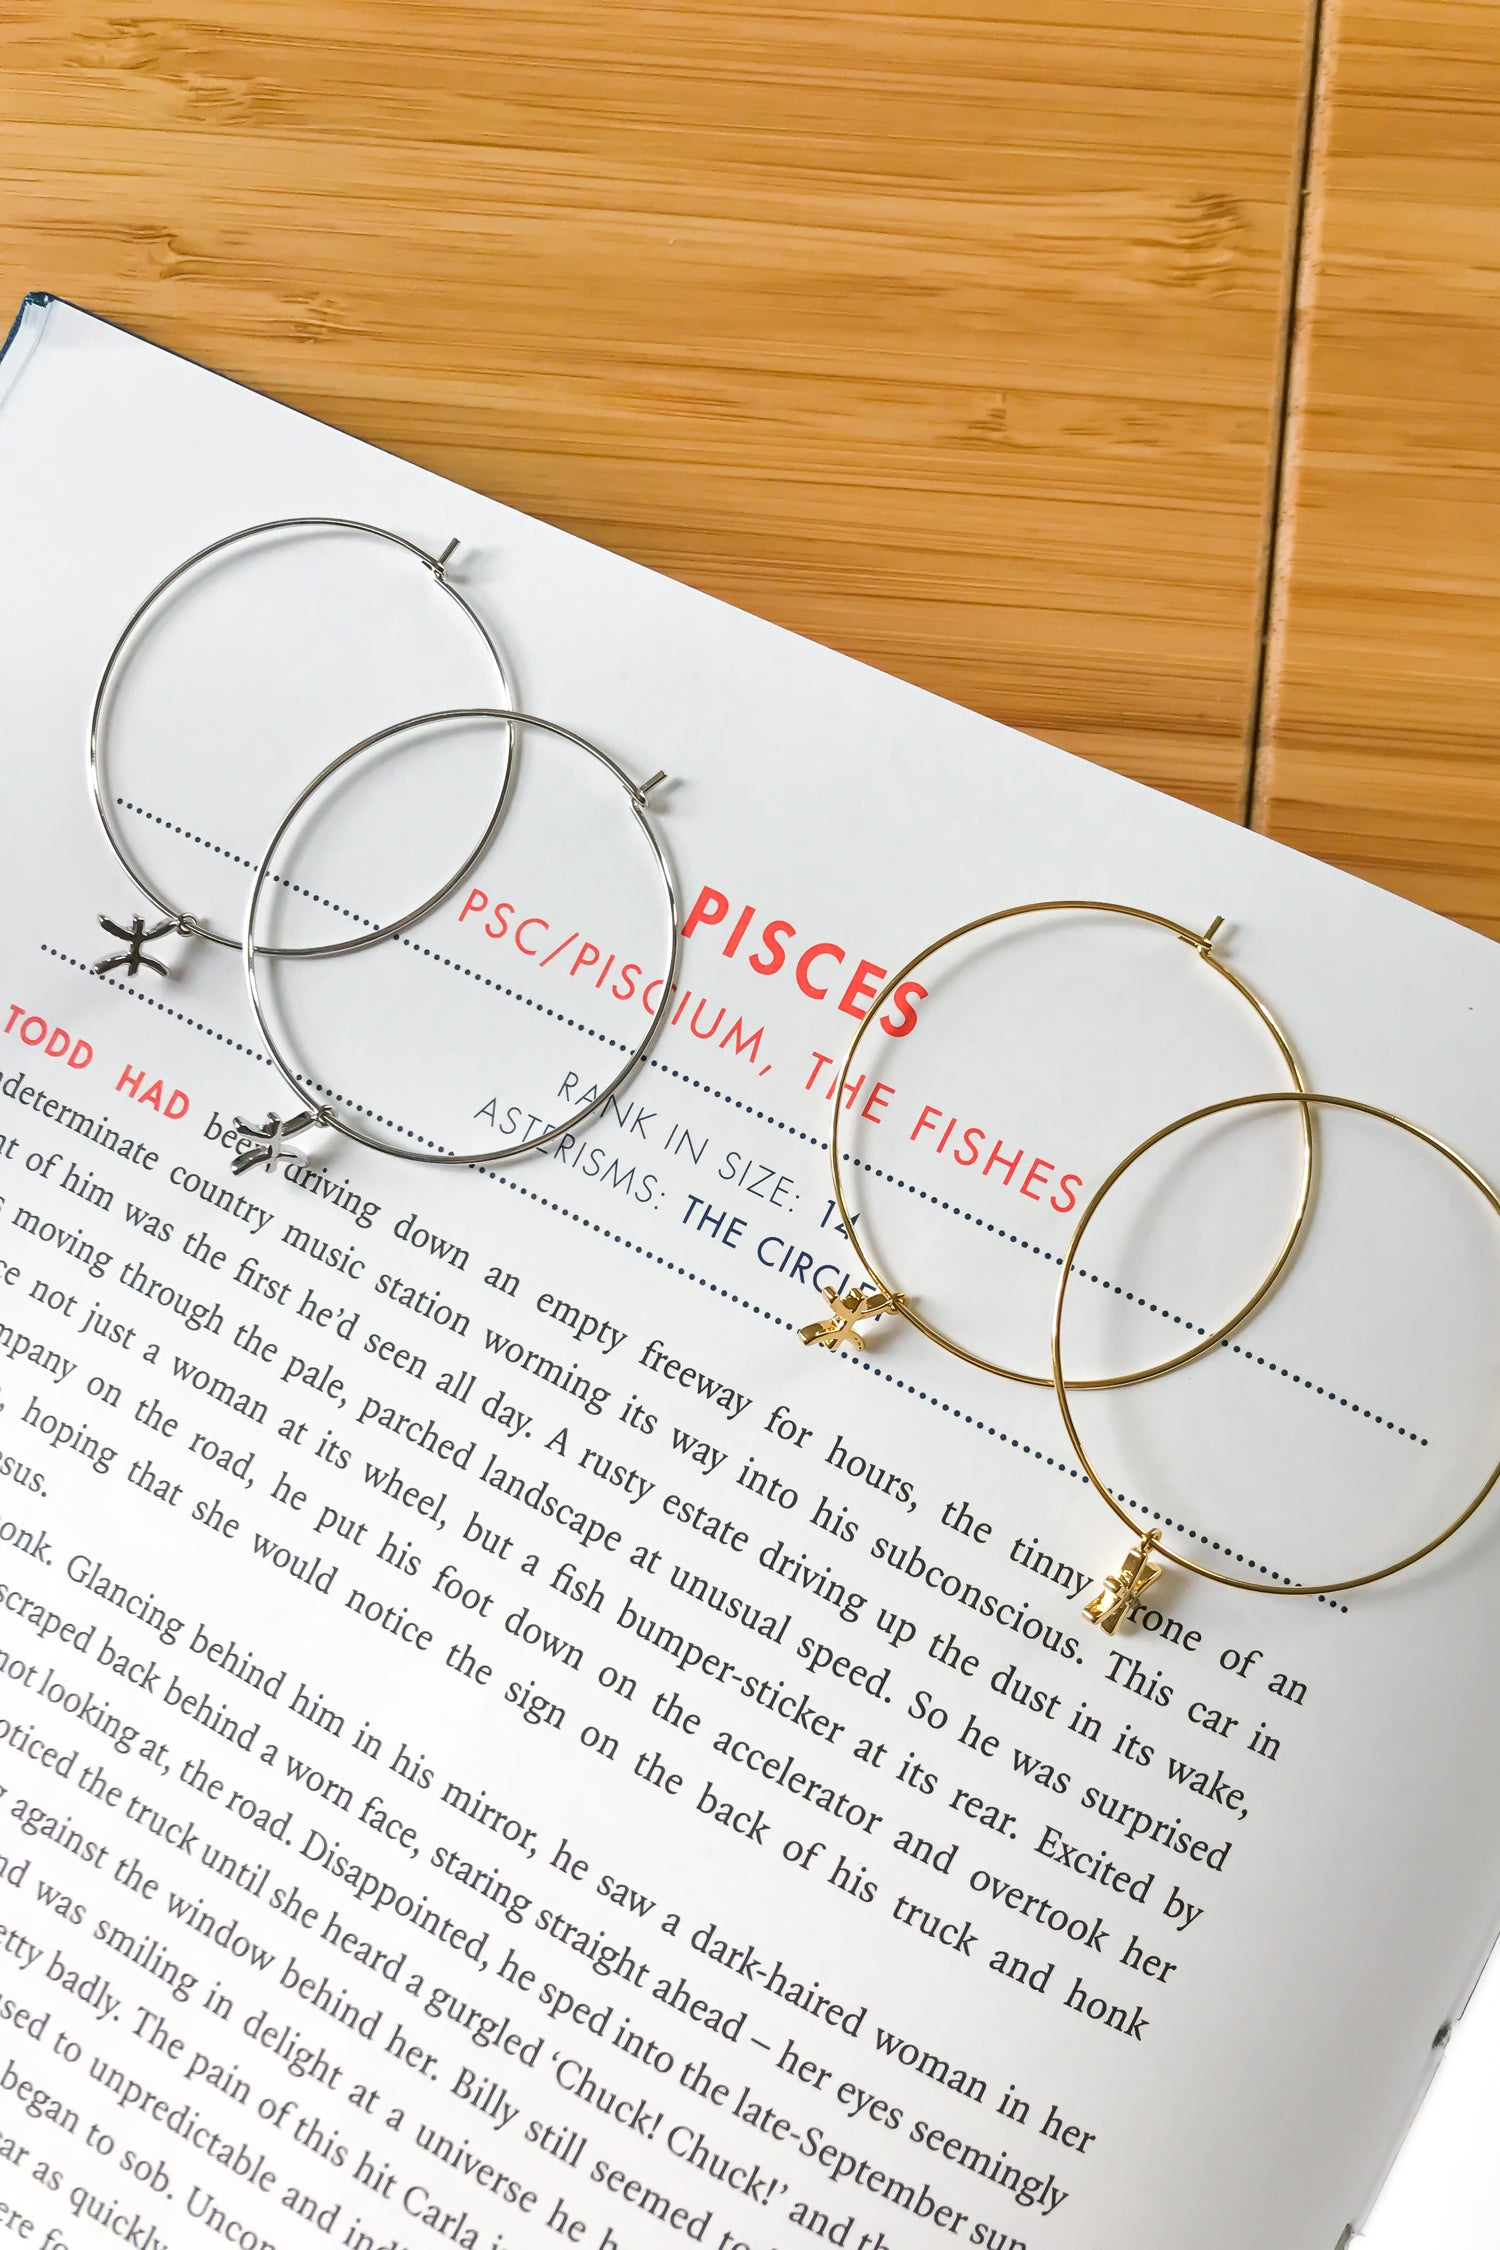 Pisces mega hoop earrings